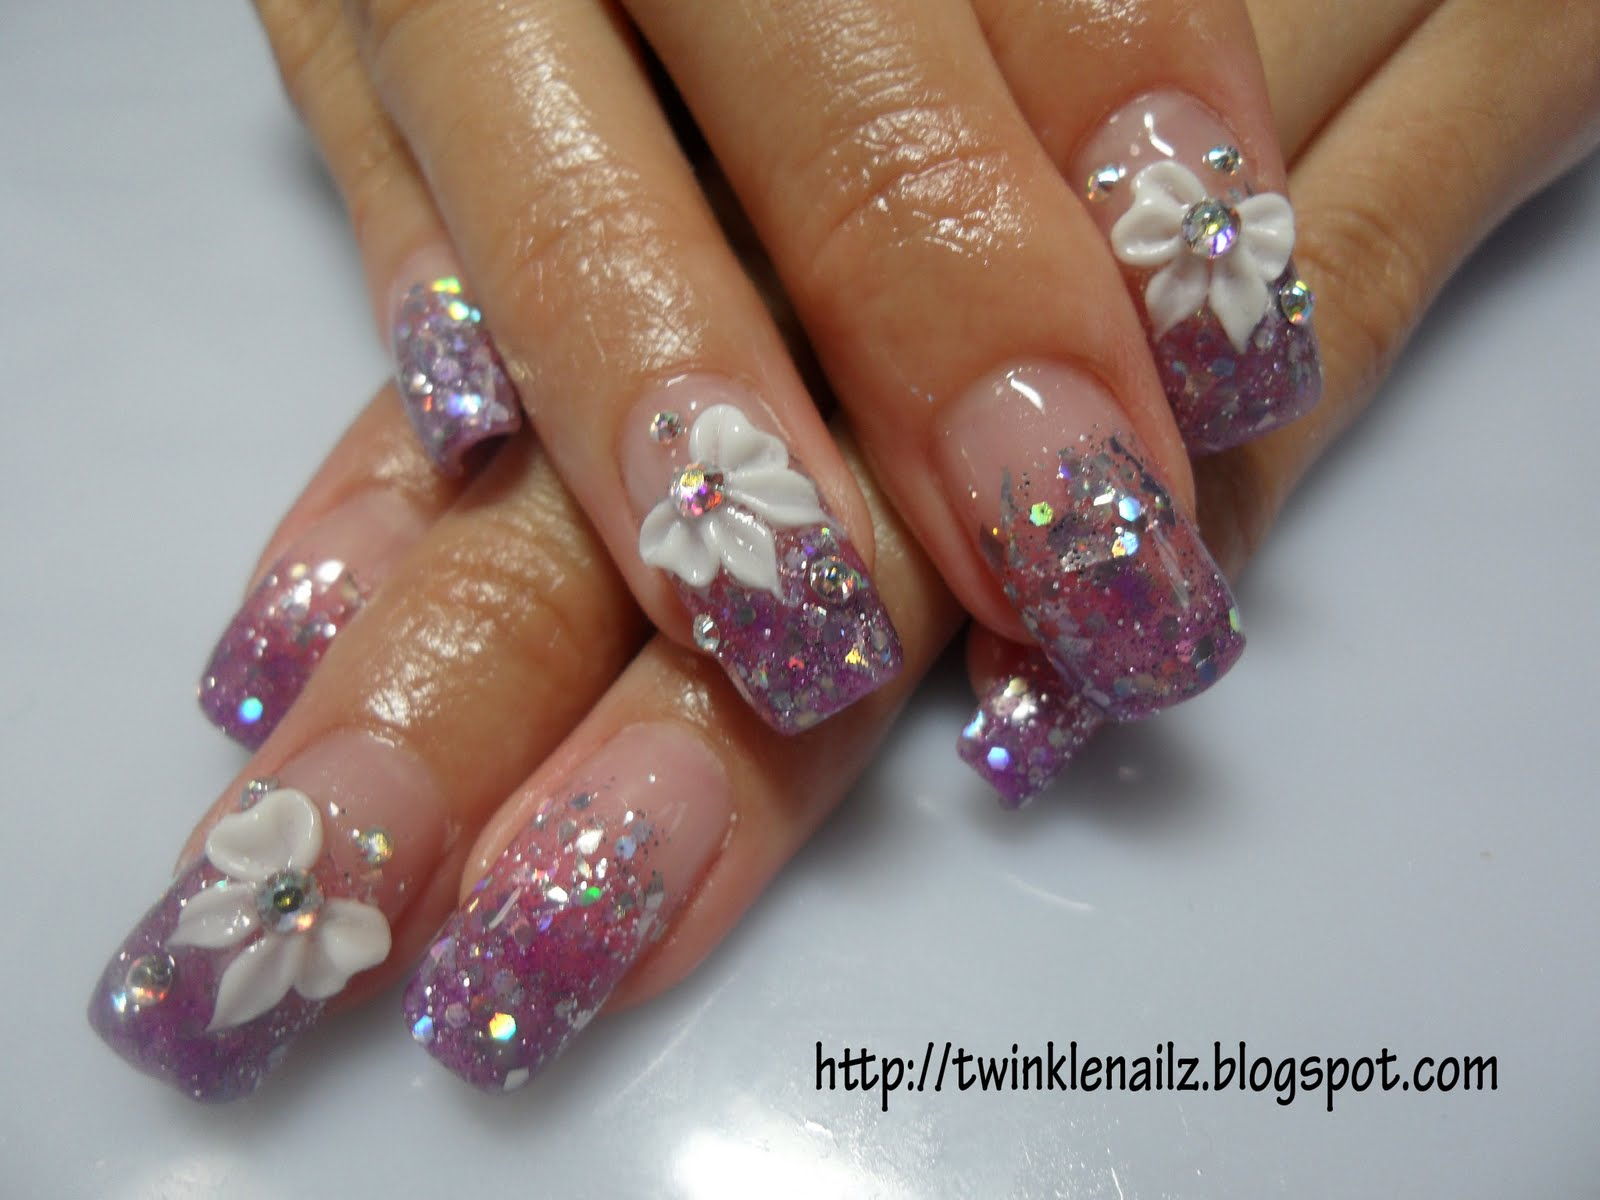 Twinkle Nailz: April 2010